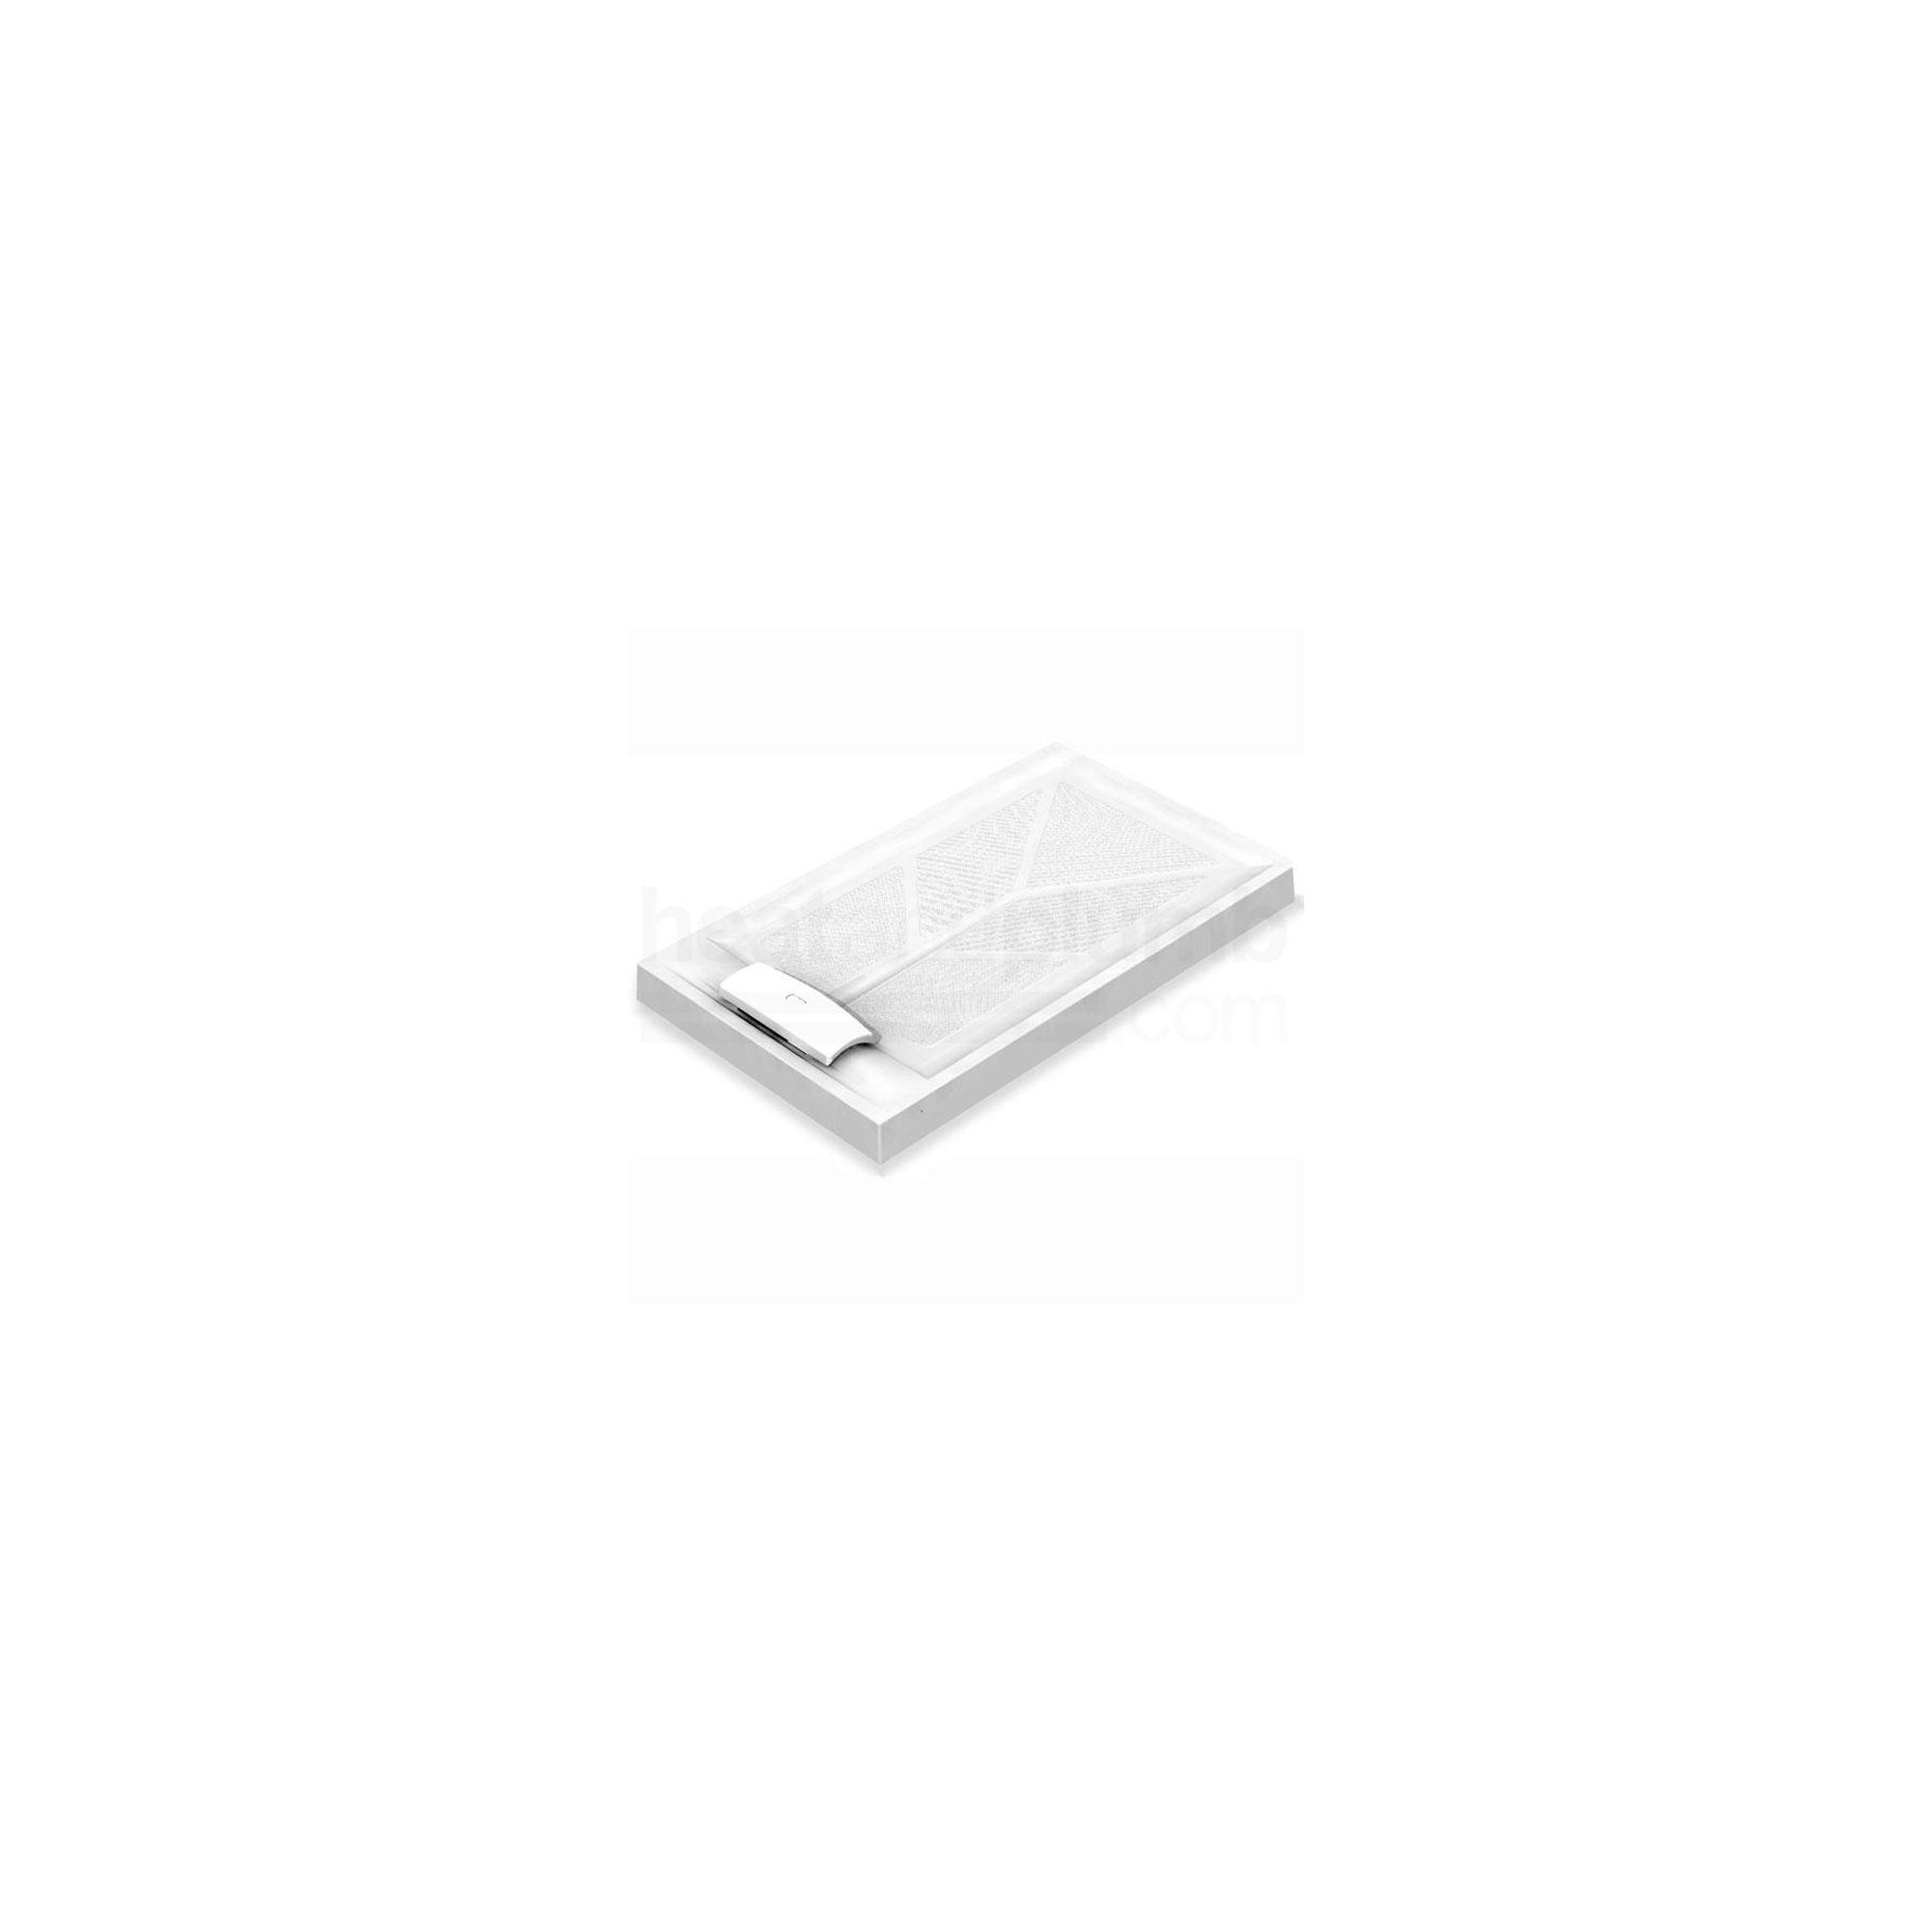 AKW Sulby Rectangular Shower Tray 1200mm x 700mm at Tesco Direct